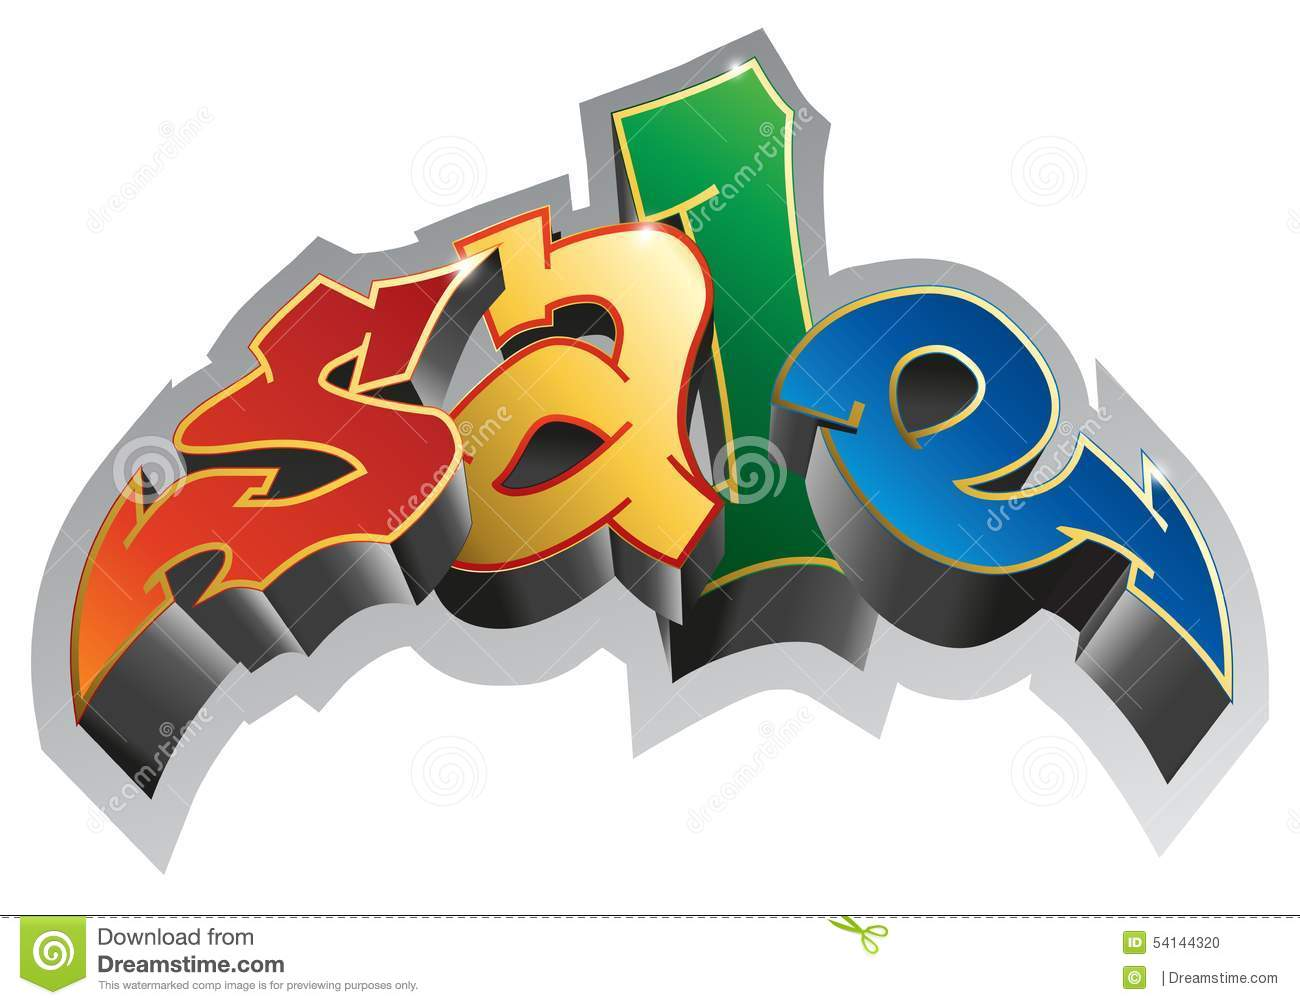 Graffiti art sale - Royalty Free Vector Download Graffiti Style Sale Graffiti